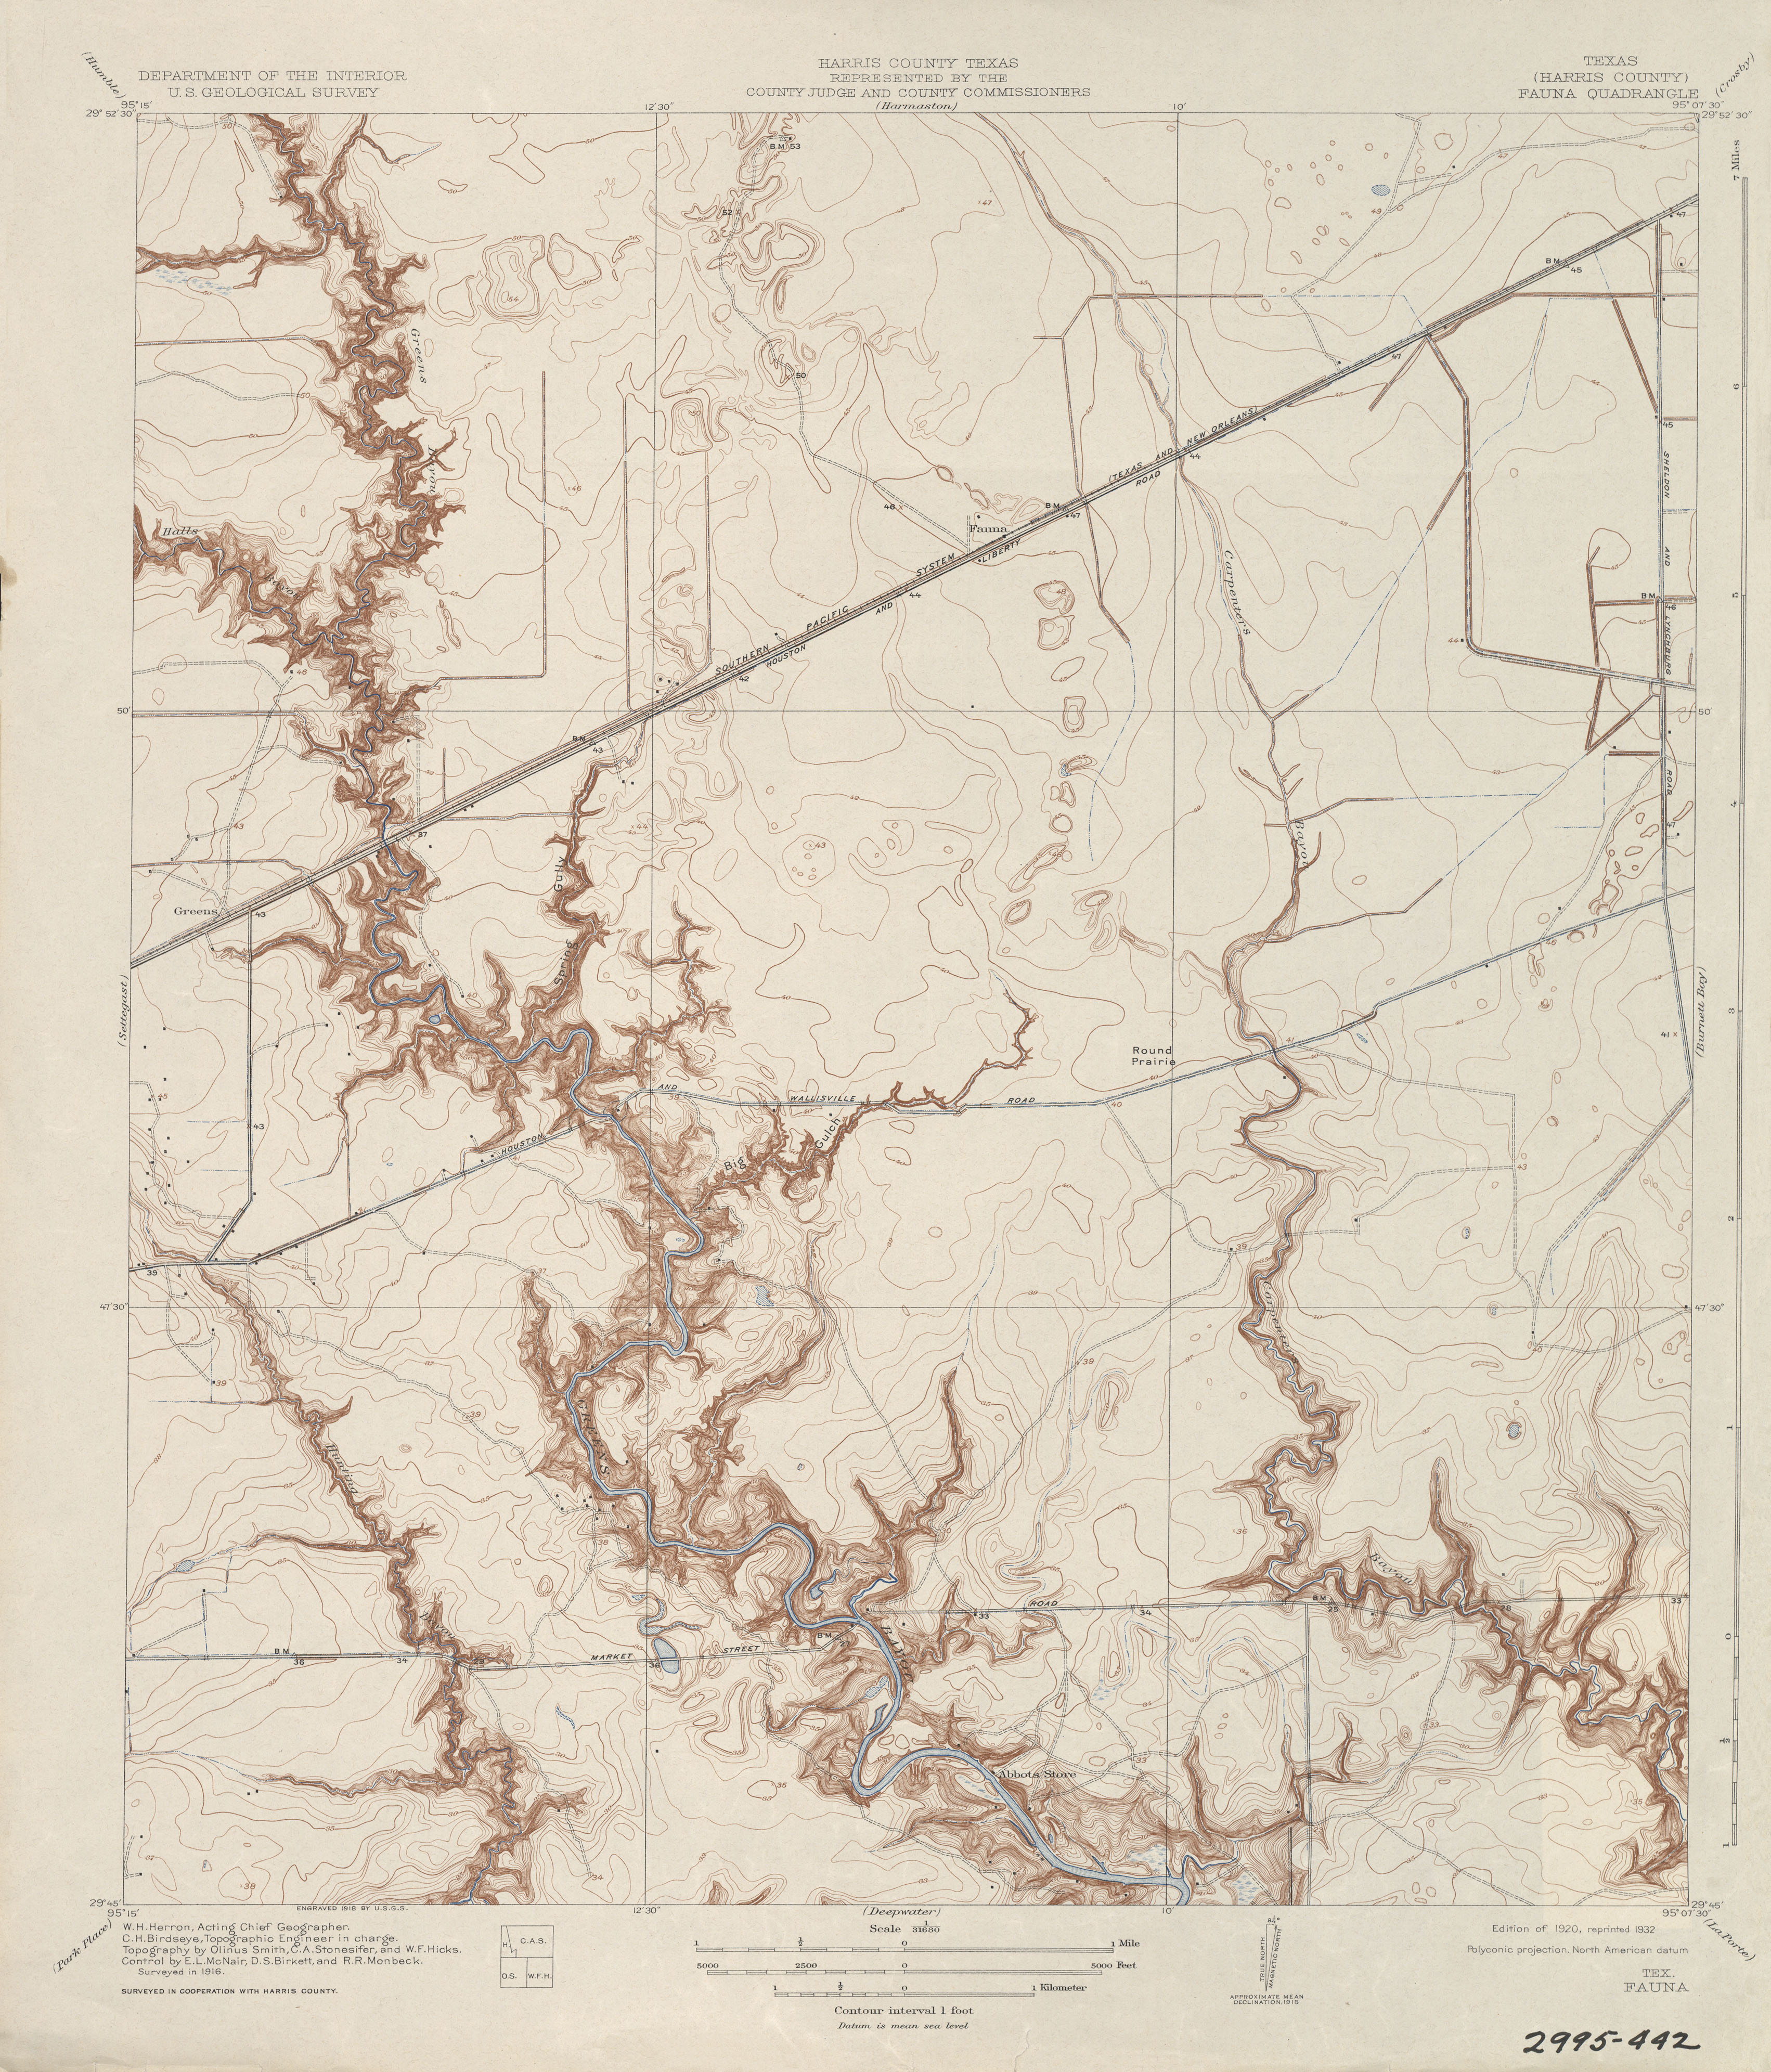 Texas Topographic Maps   Perry Castañeda Map Collection   UT